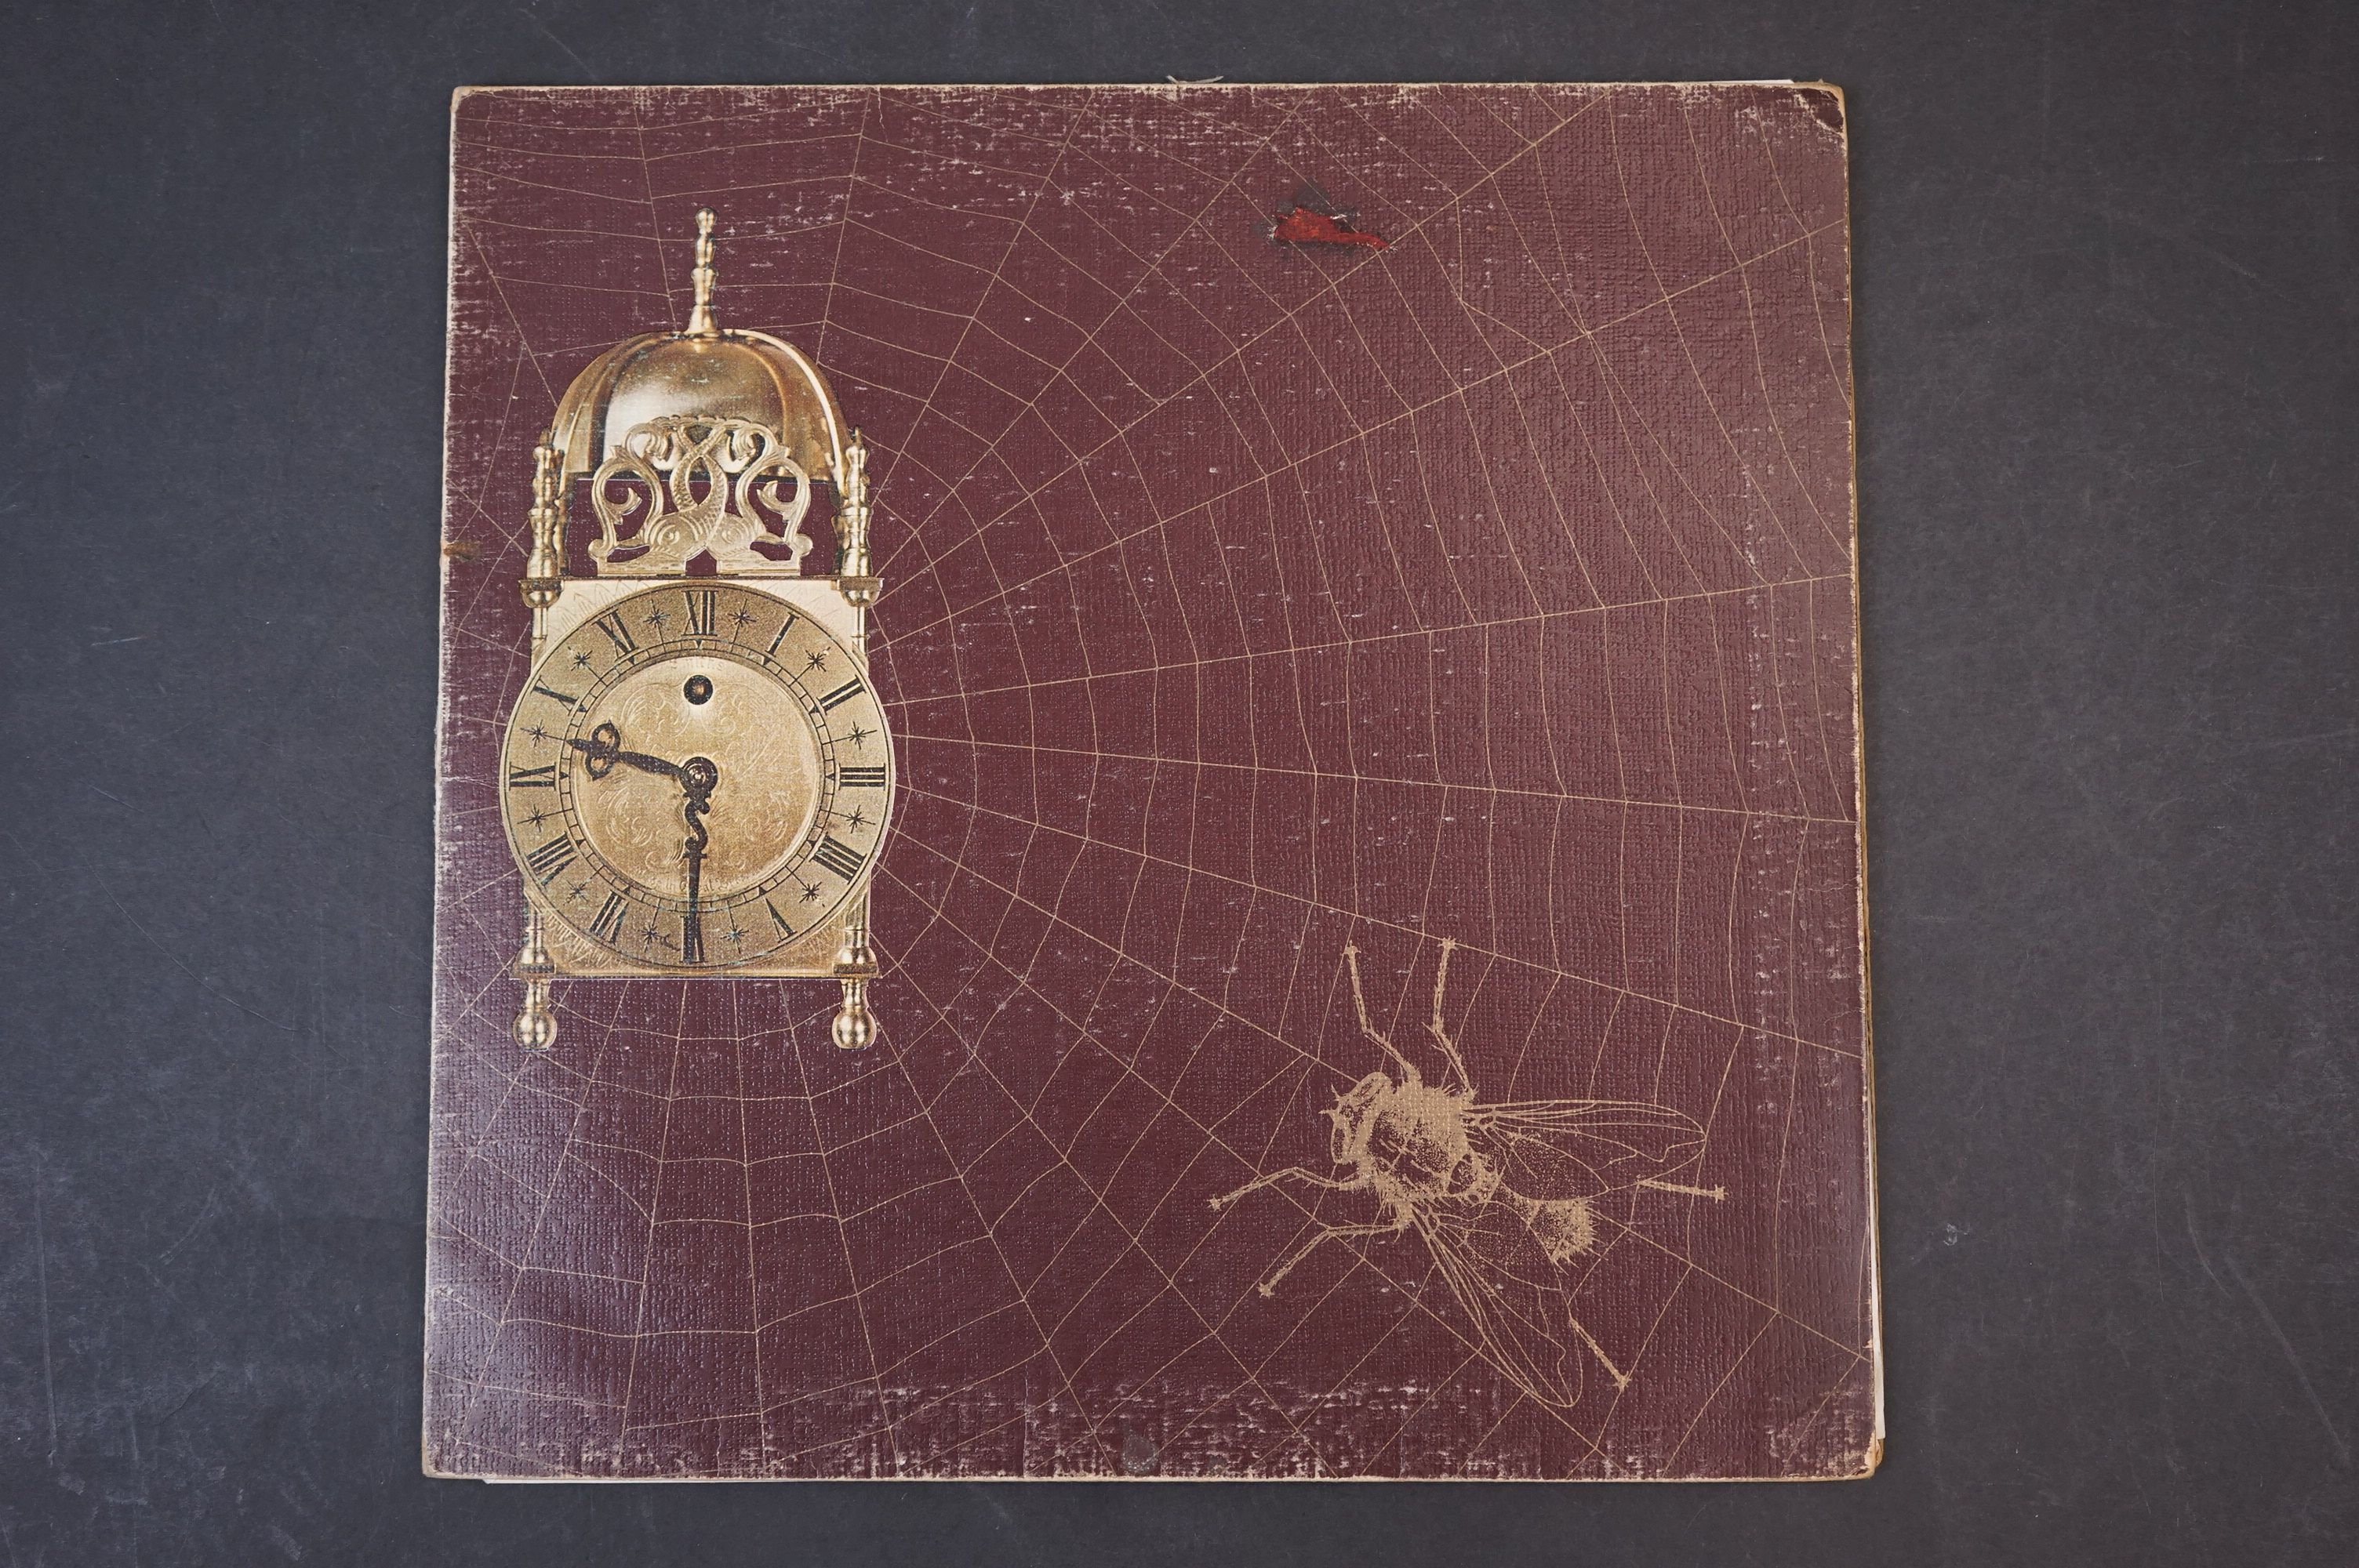 Vinyl - 9.30 Fly self titled LP on Ember NR5062 stereo, textured gatefold sleeve, writing to